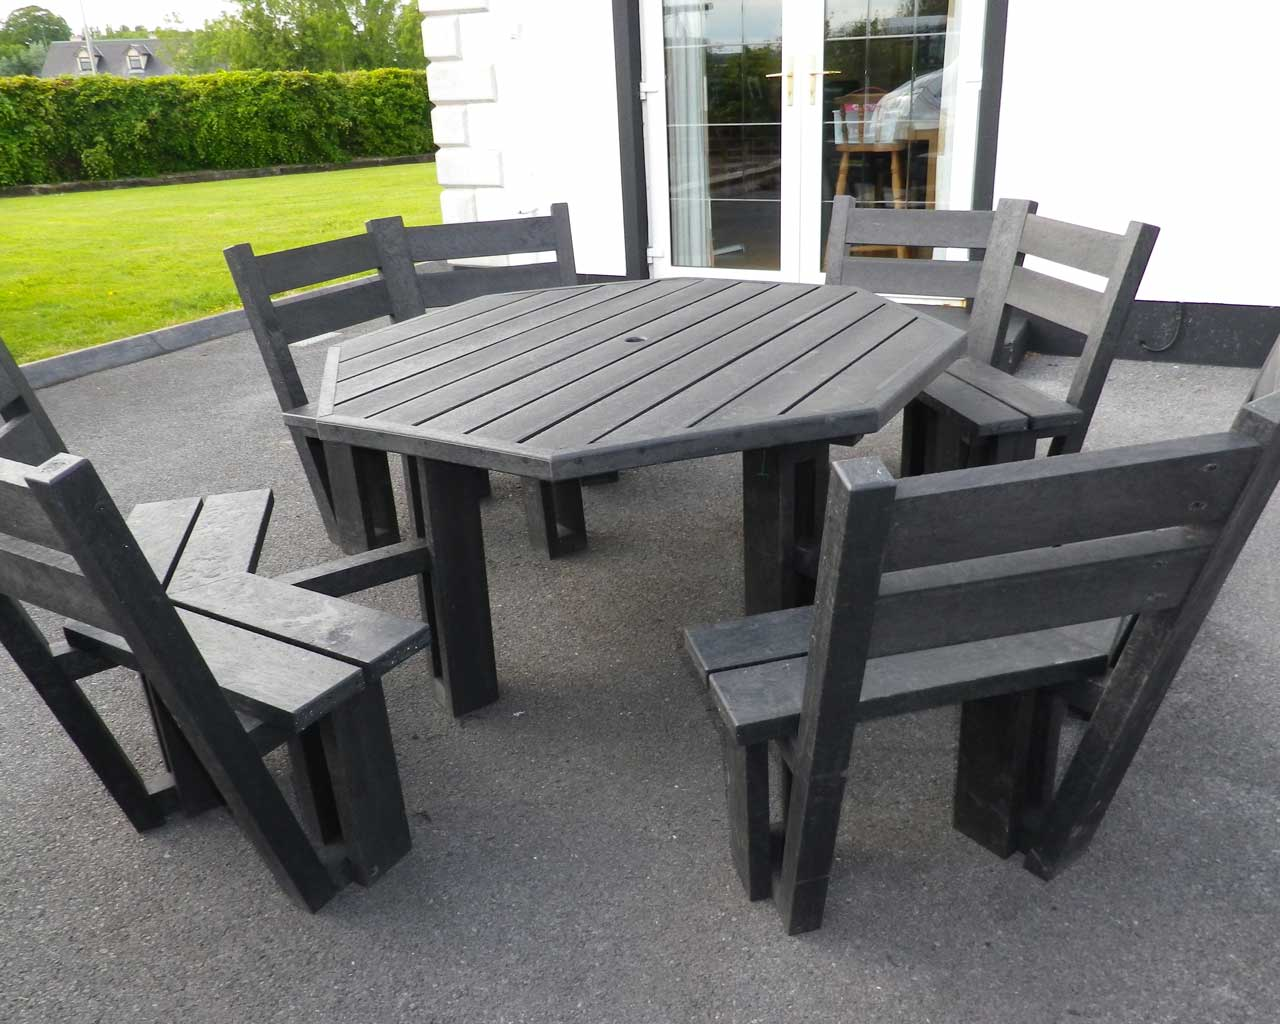 8 seater picnic table with back